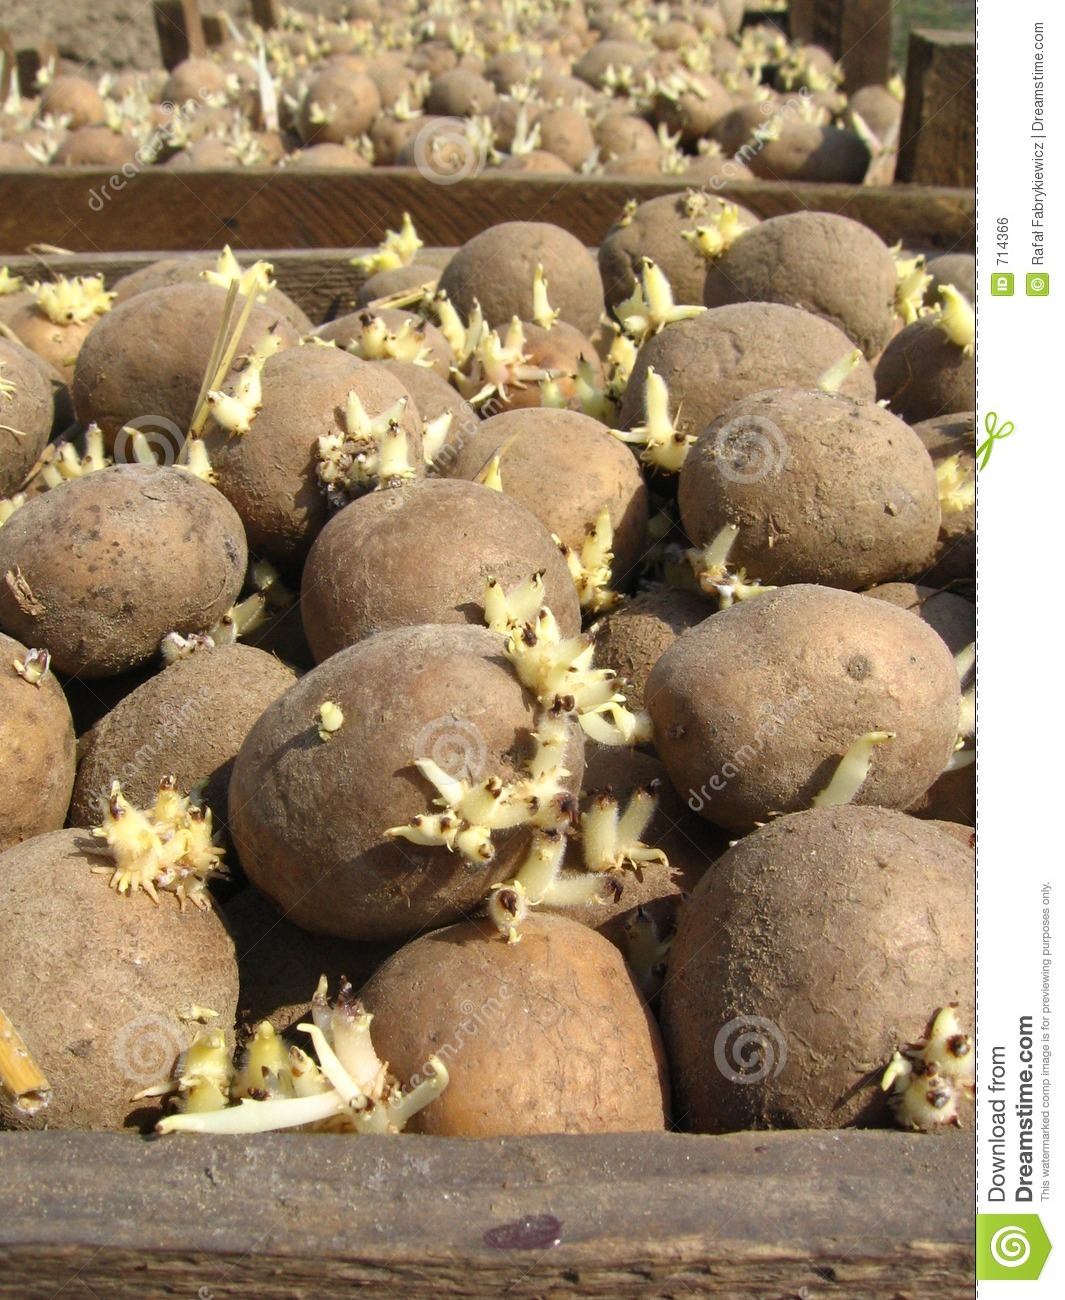 how to cut seed potatoes